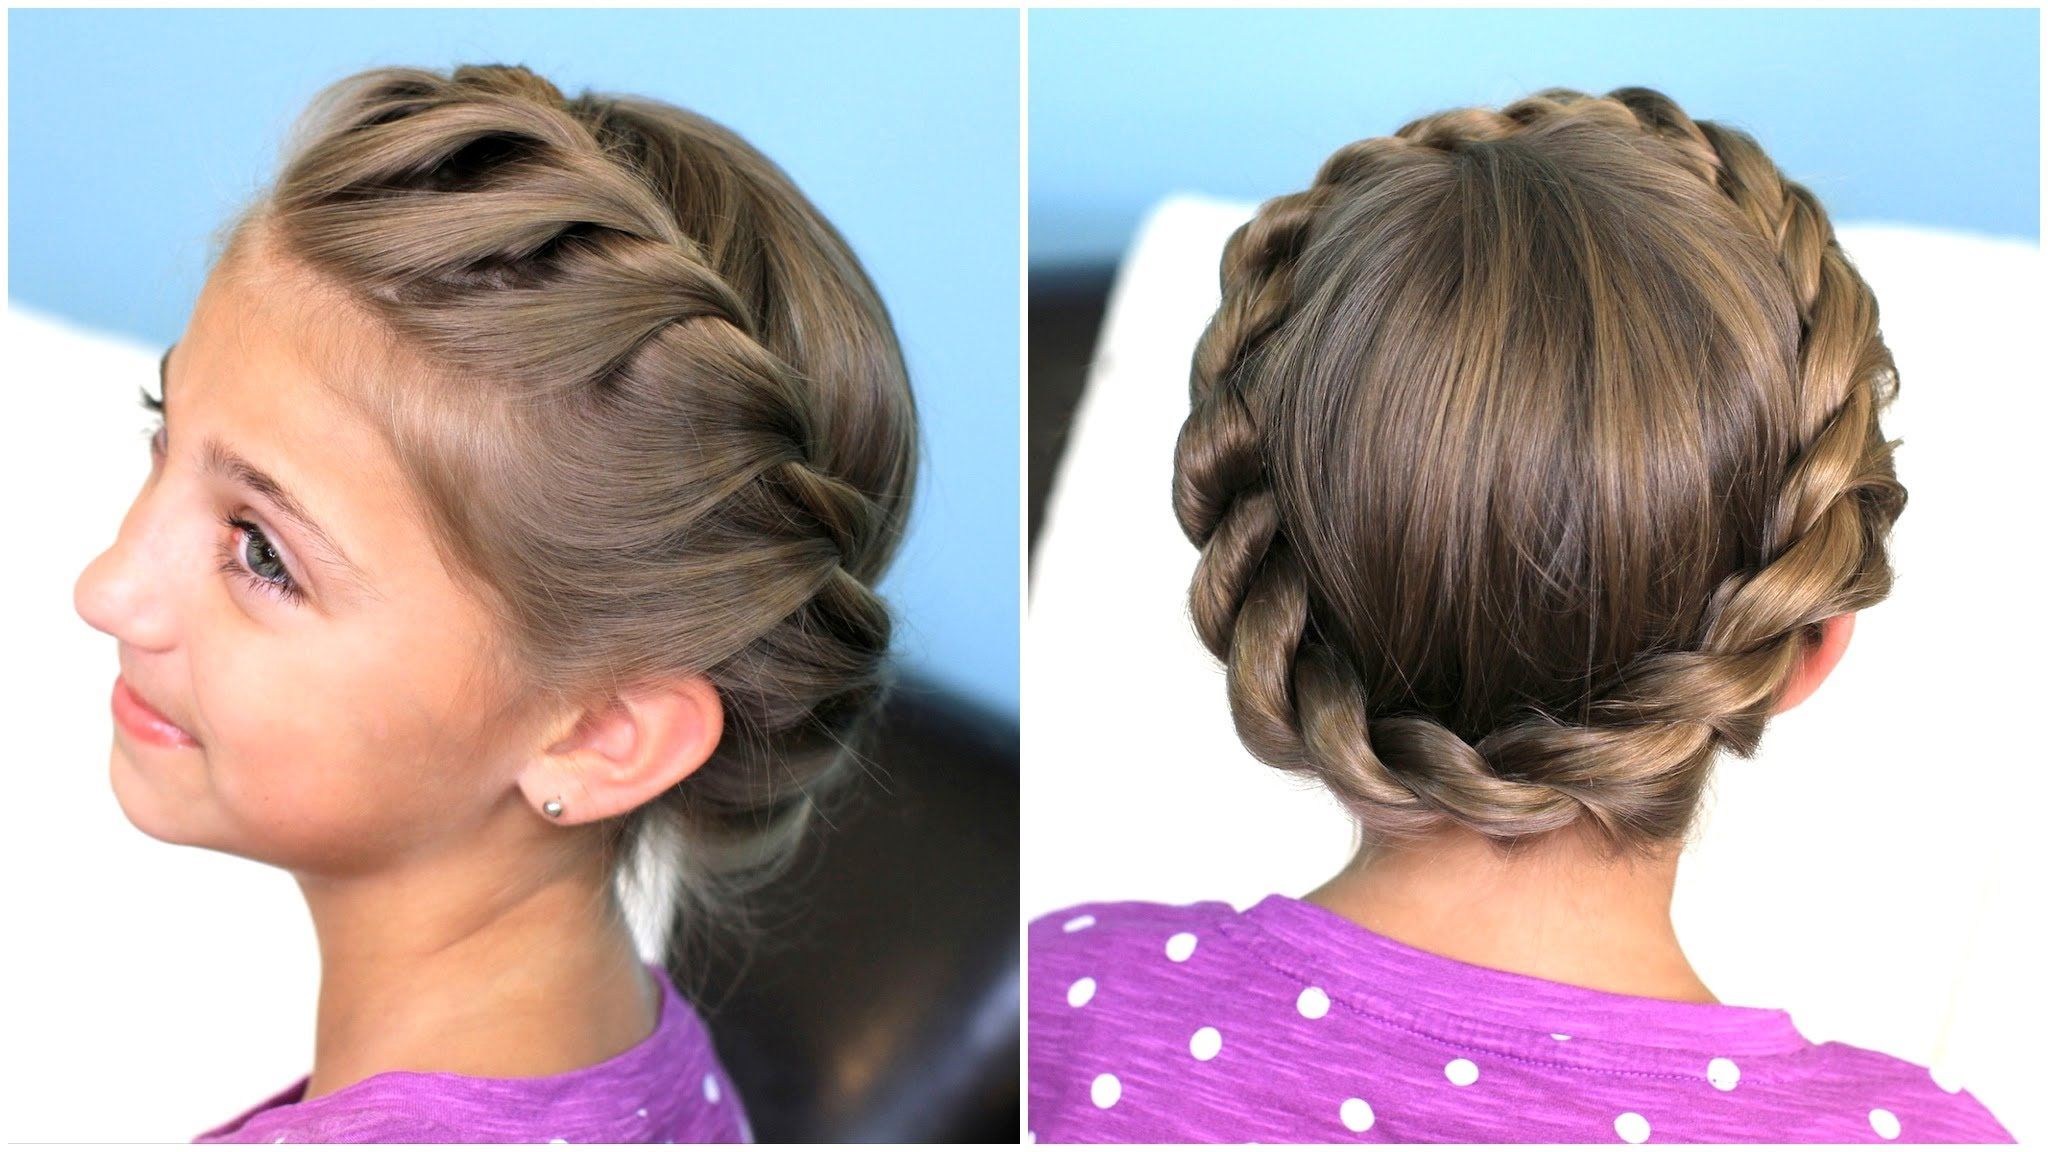 Twisted Hairstyles Adorable How To Create A Crown Twist Braid  Updo Hairstyles  Hair 2